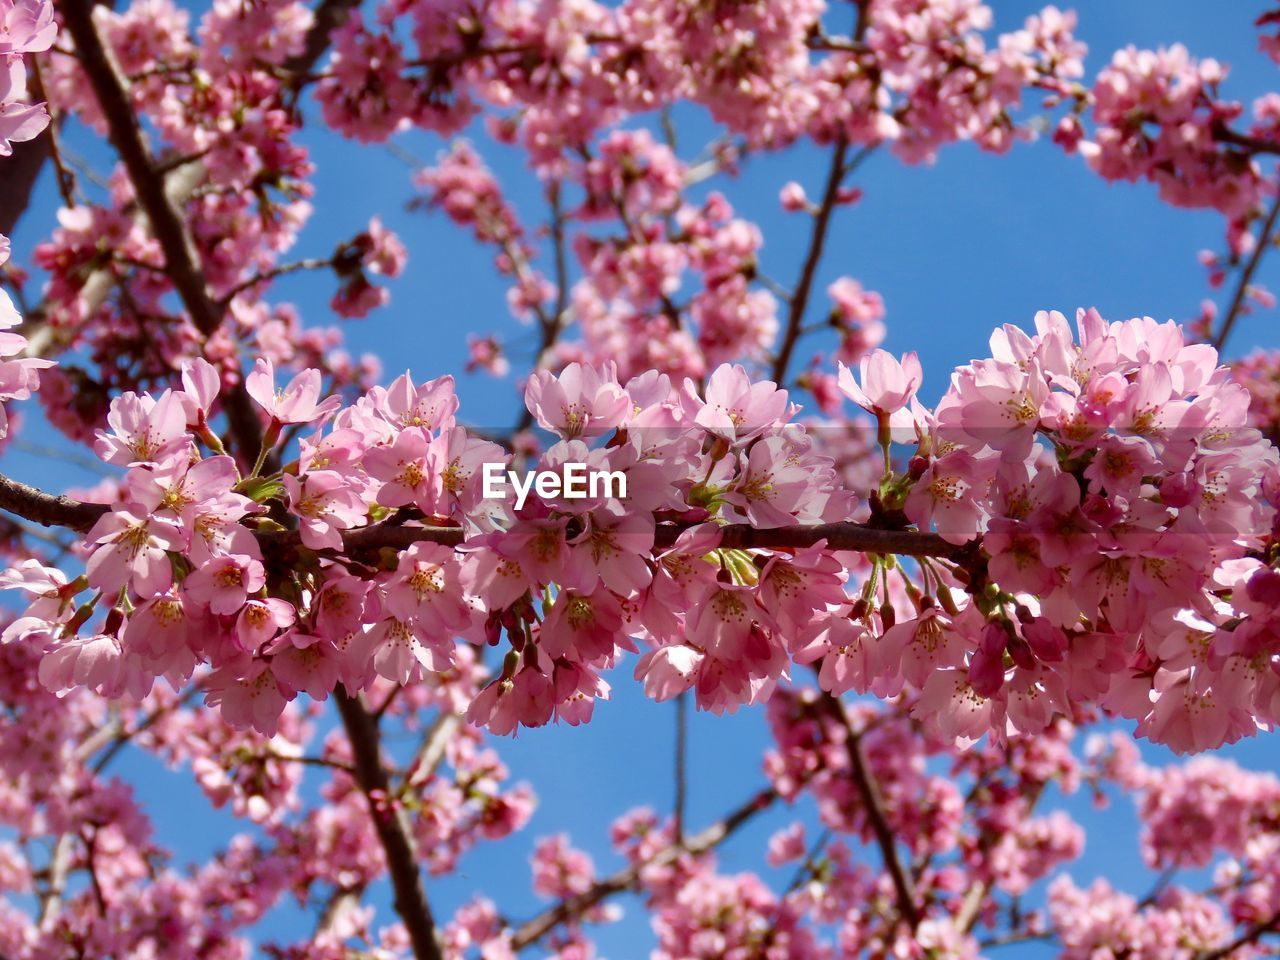 flowering plant, flower, pink color, fragility, plant, freshness, vulnerability, tree, springtime, growth, blossom, beauty in nature, branch, cherry blossom, close-up, nature, low angle view, day, petal, no people, cherry tree, flower head, outdoors, plum blossom, pollen, spring, bunch of flowers